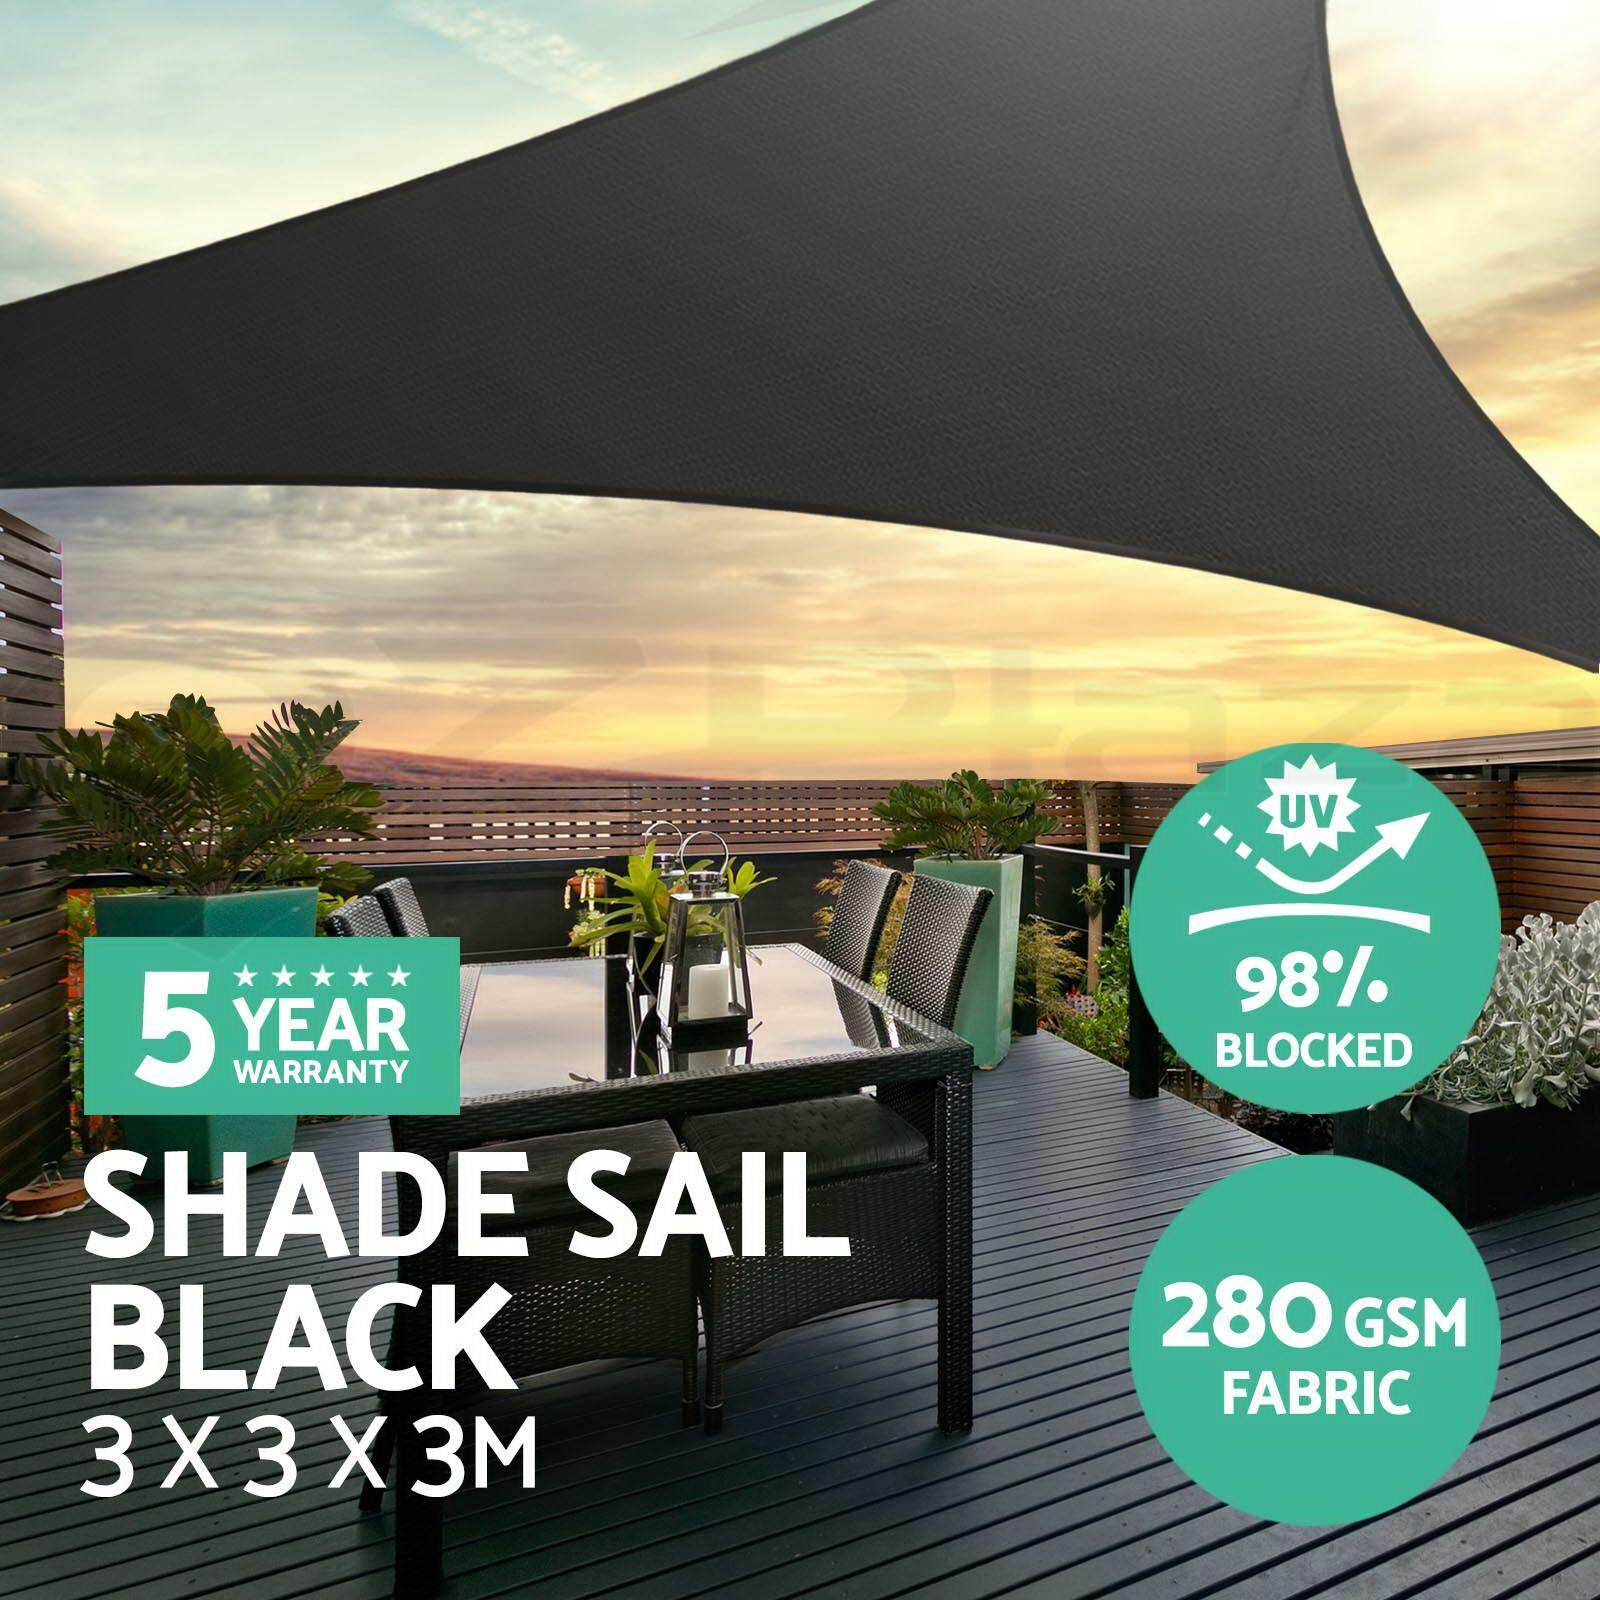 Extra Heavy Duty Shade Sail Sun Canopy Outdoor Triangle Square Rectangle Black # 3*3*3M